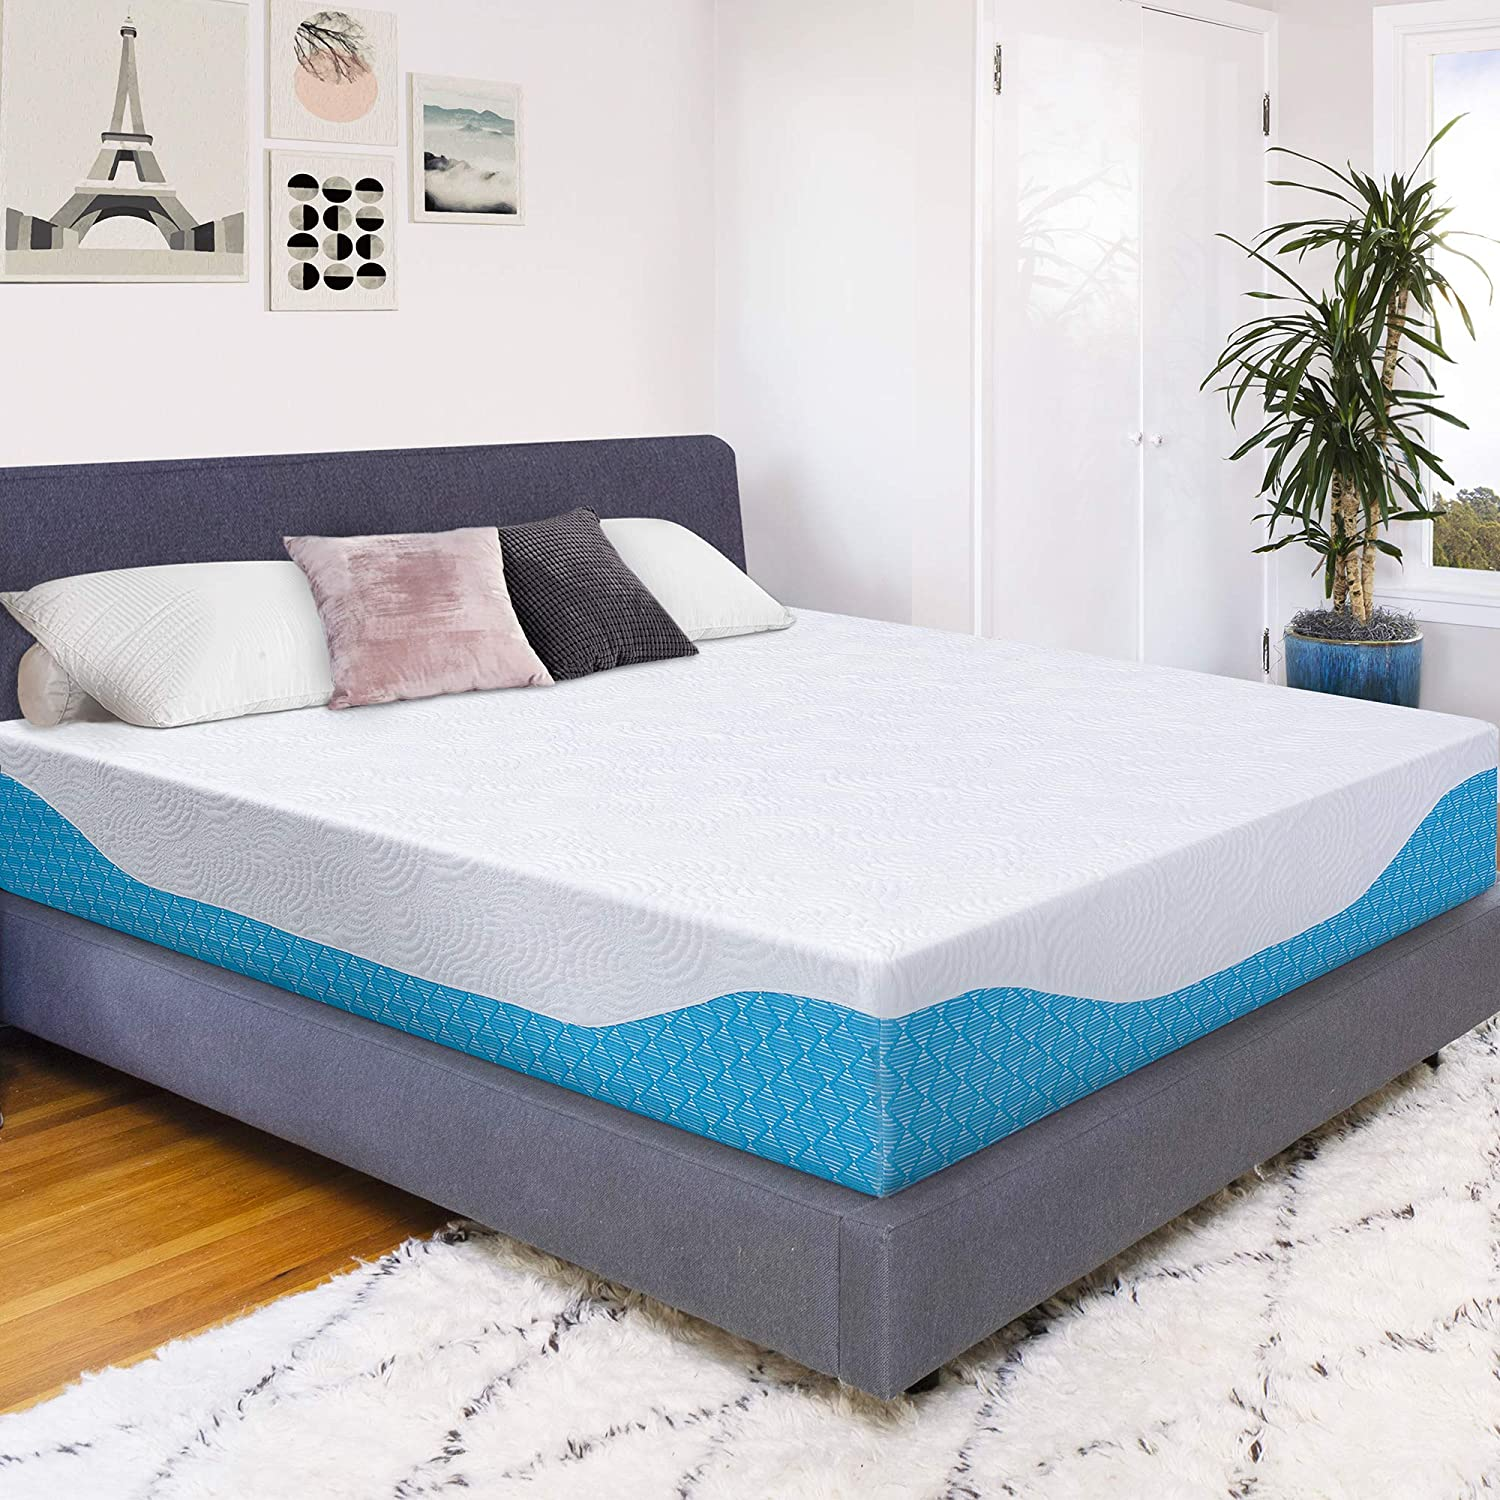 PrimaSleep 12 Inch Multi-Layered I-Gel Infused Memory Foam Mattress,Queen,White Blue